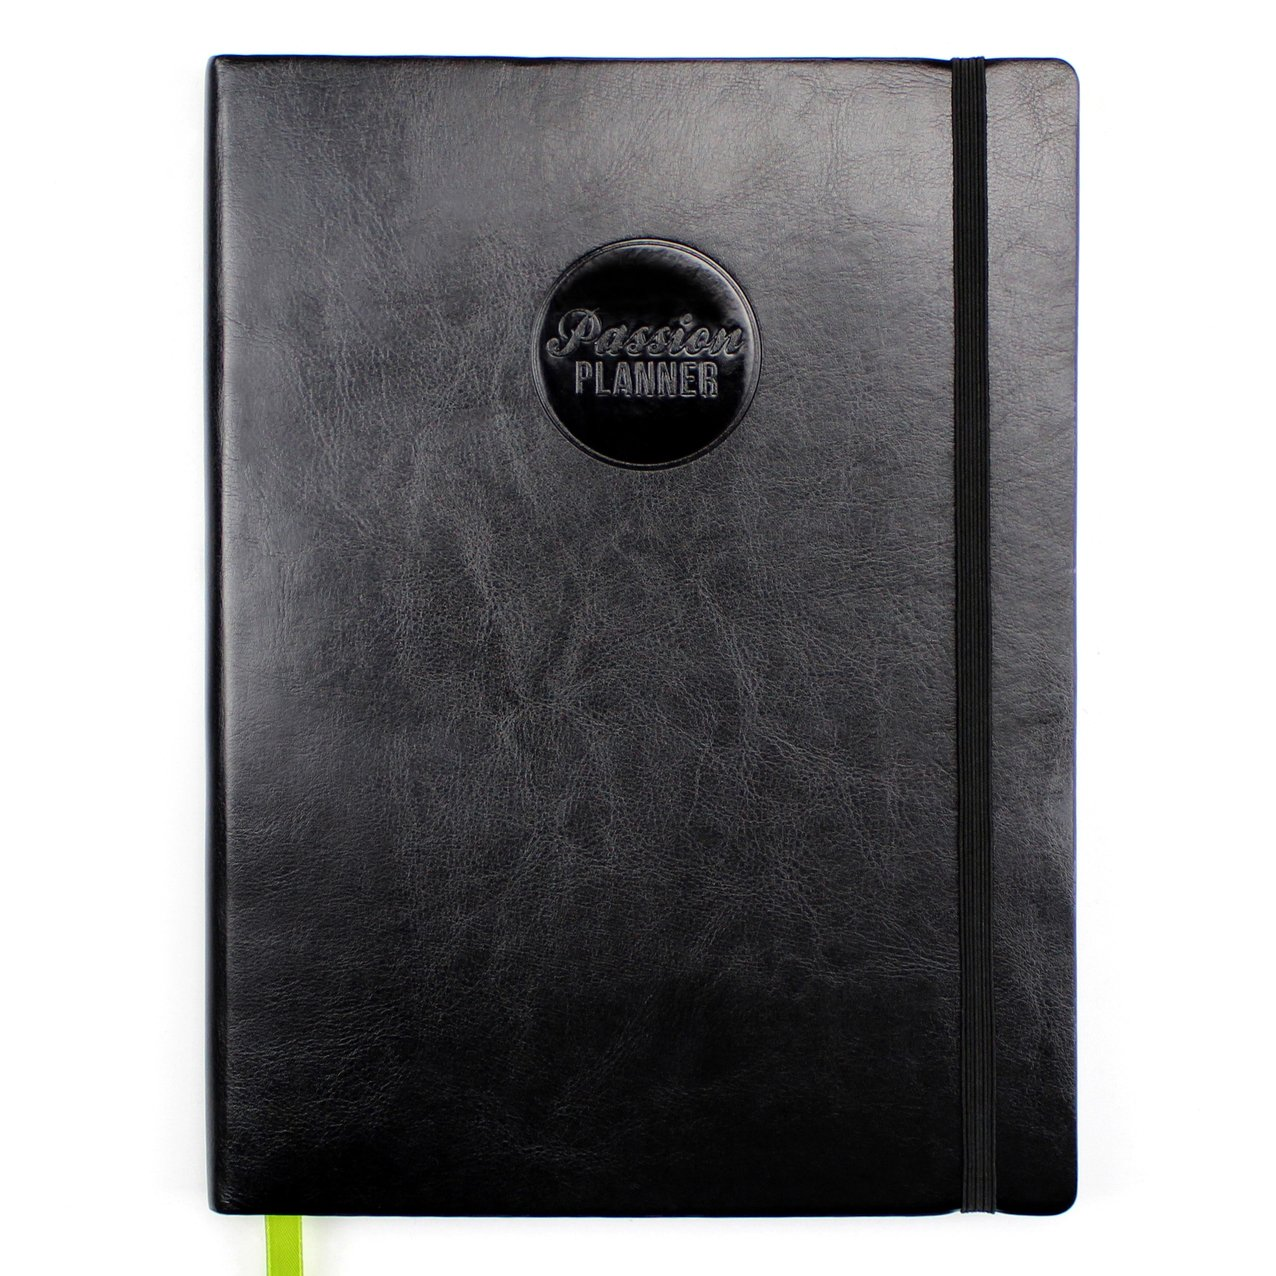 Passion Planner Undated - Goal Oriented Daily Agenda, Appointment Calendar, Gratitude and Reflection Journal - Classic Size (A4) Monday Black